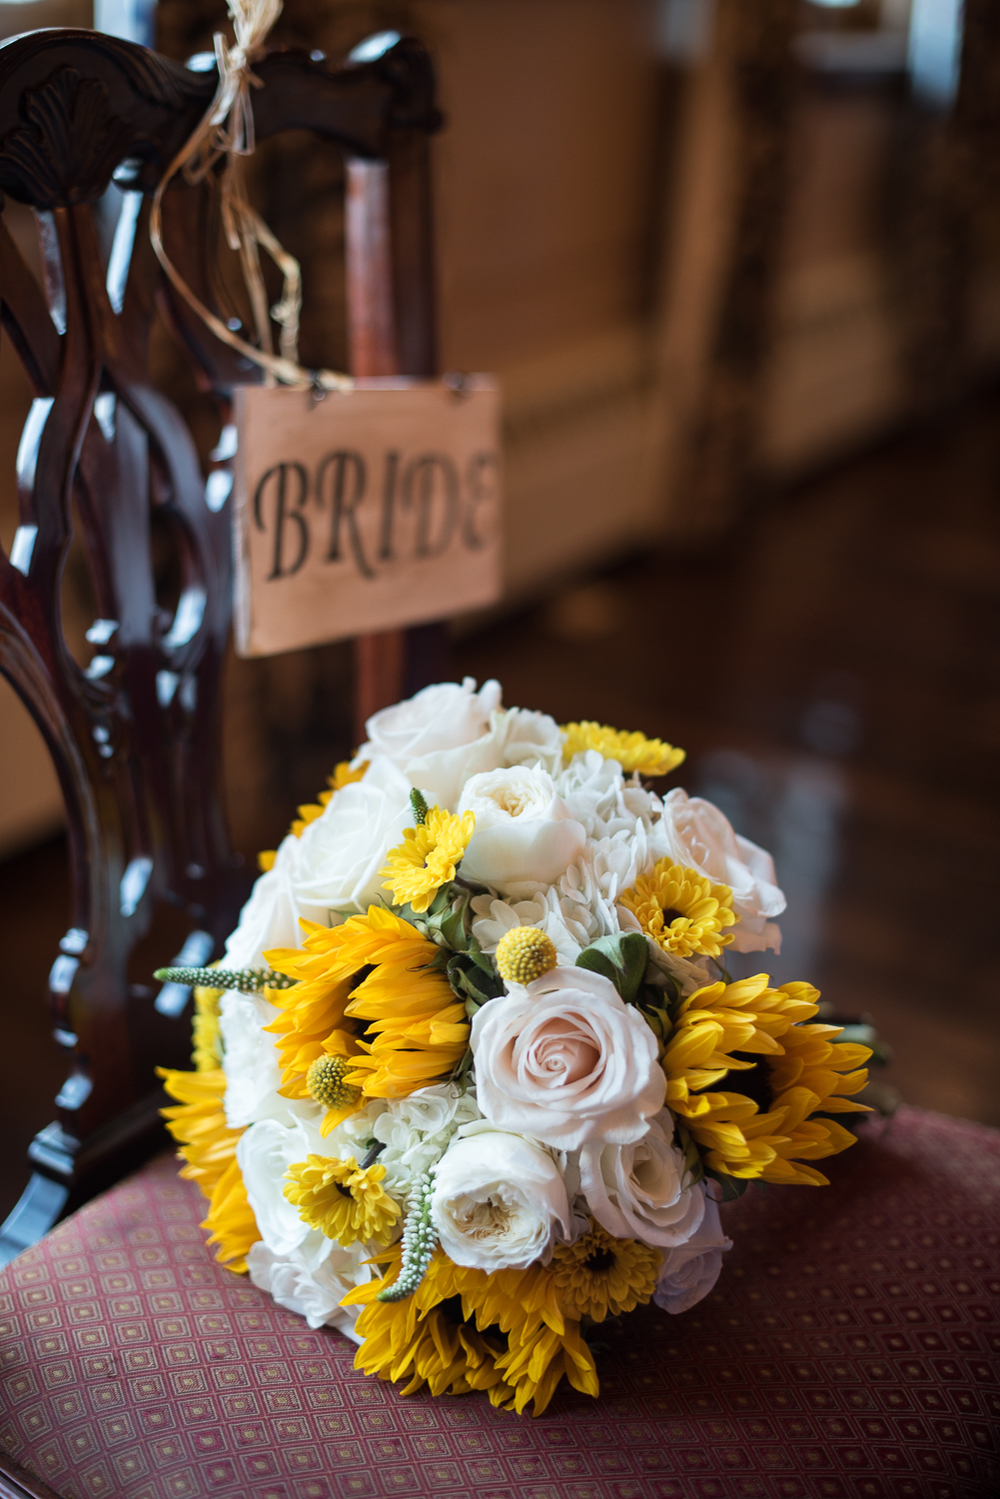 Publick House wedding venue photos in Sturbridge, MA by Kara Emily Krantz Photography featured in Bride & Groom Magazine